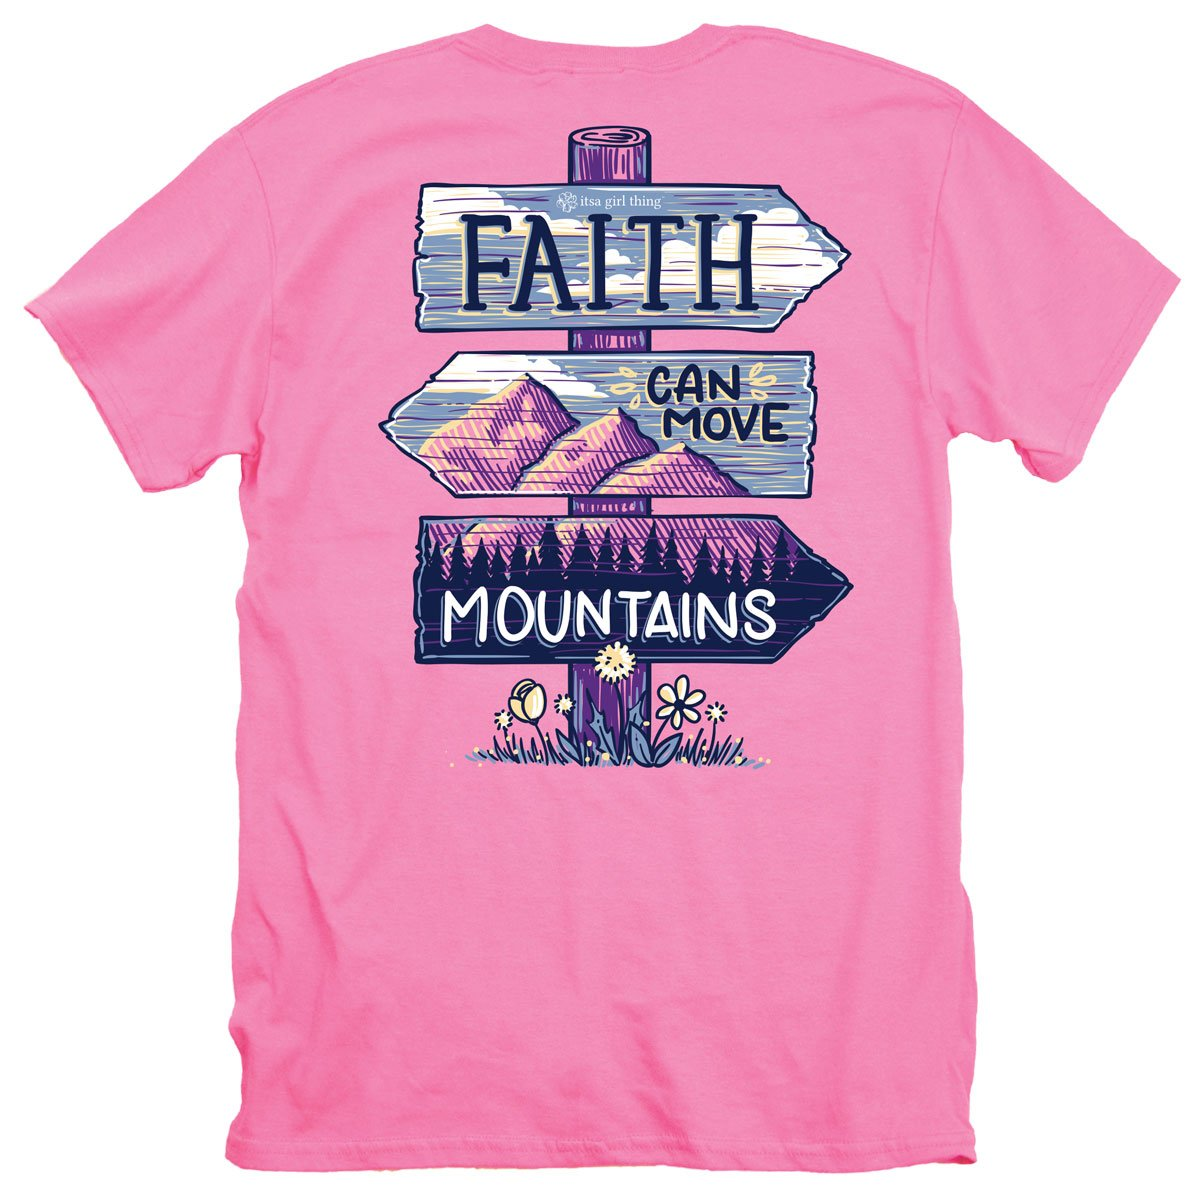 Faith Mountains - YOUTH